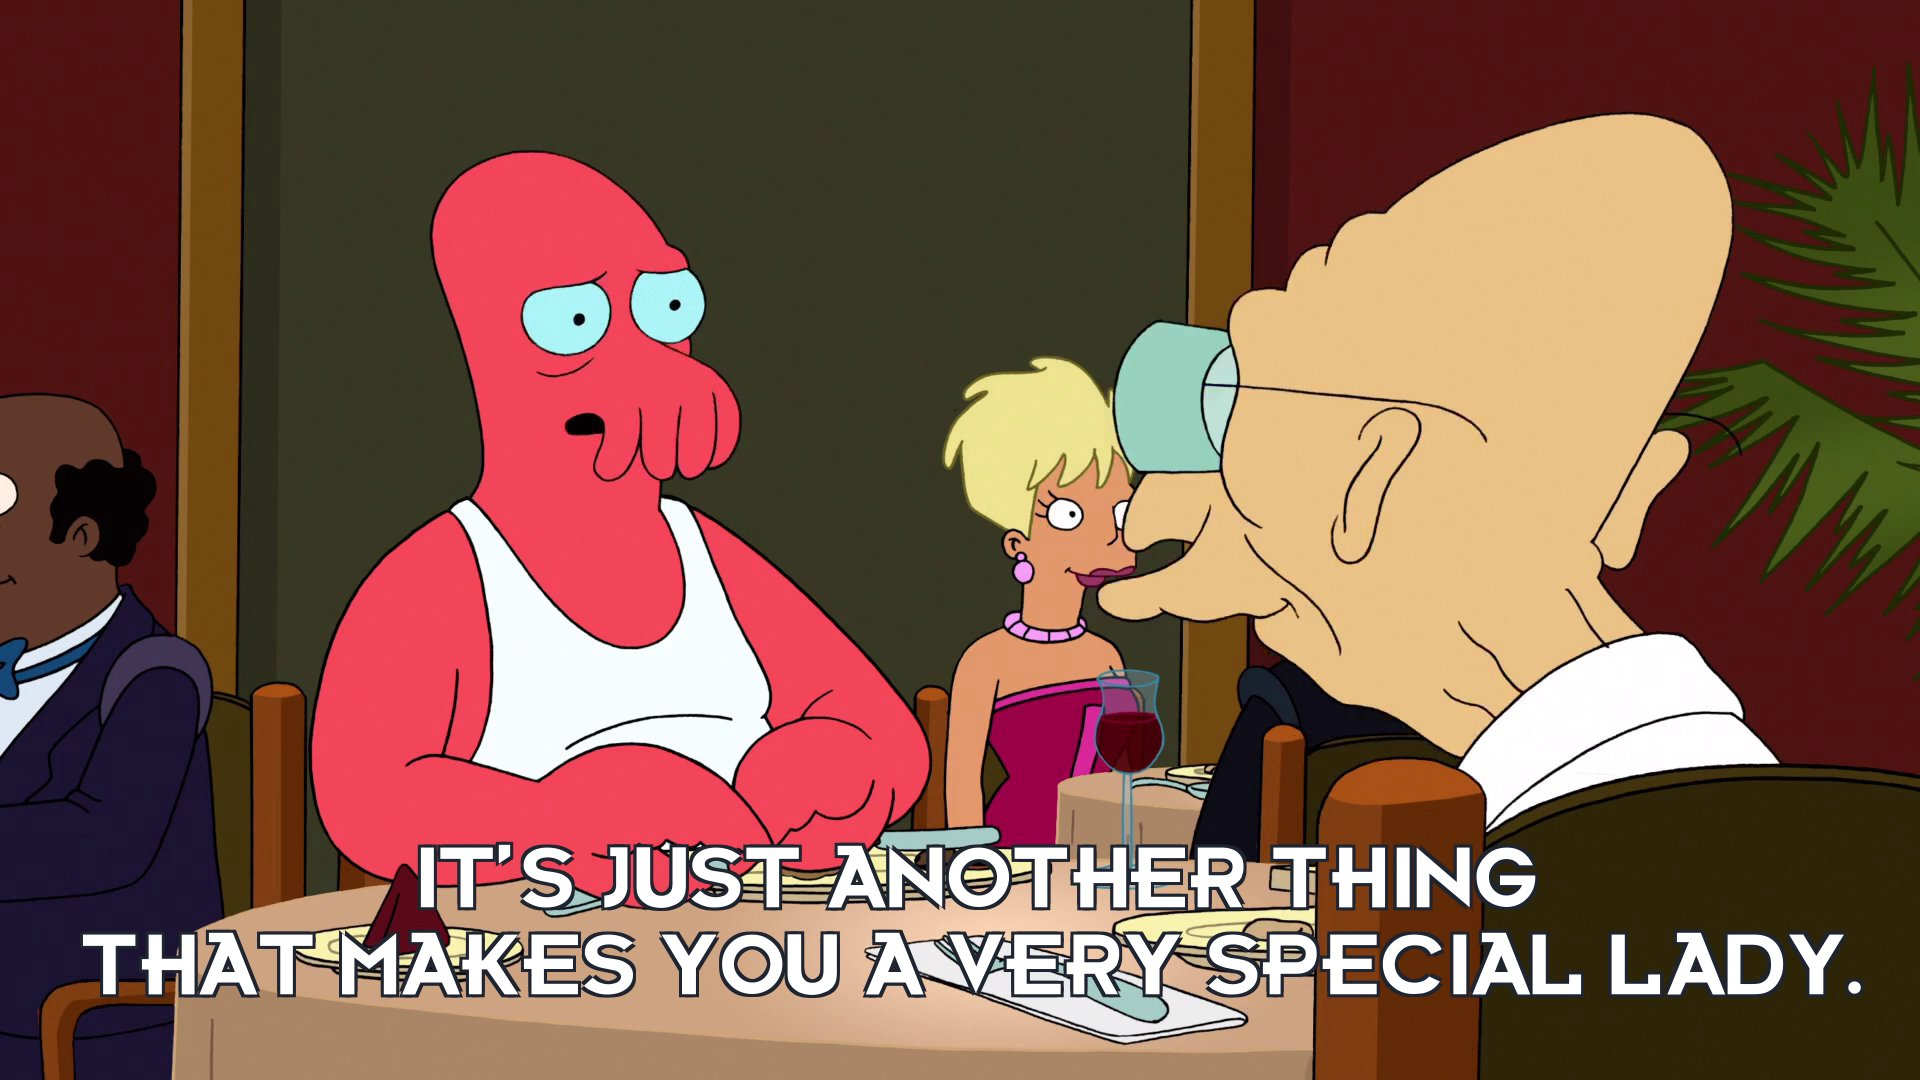 Philip J Fry [in Dr John A Zoidberg's body]: It's just another thing that makes you a very special lady.